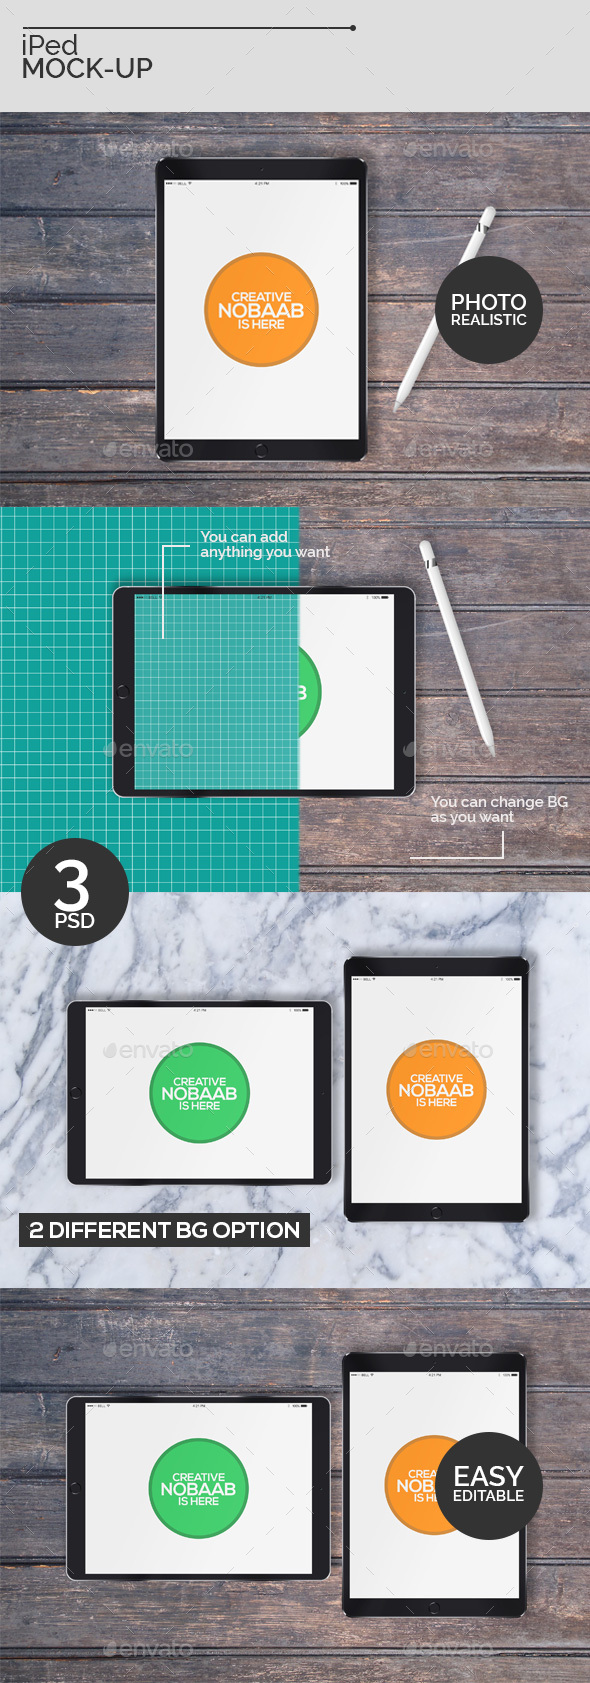 GraphicRiver iPed Mock-Ups 21070123